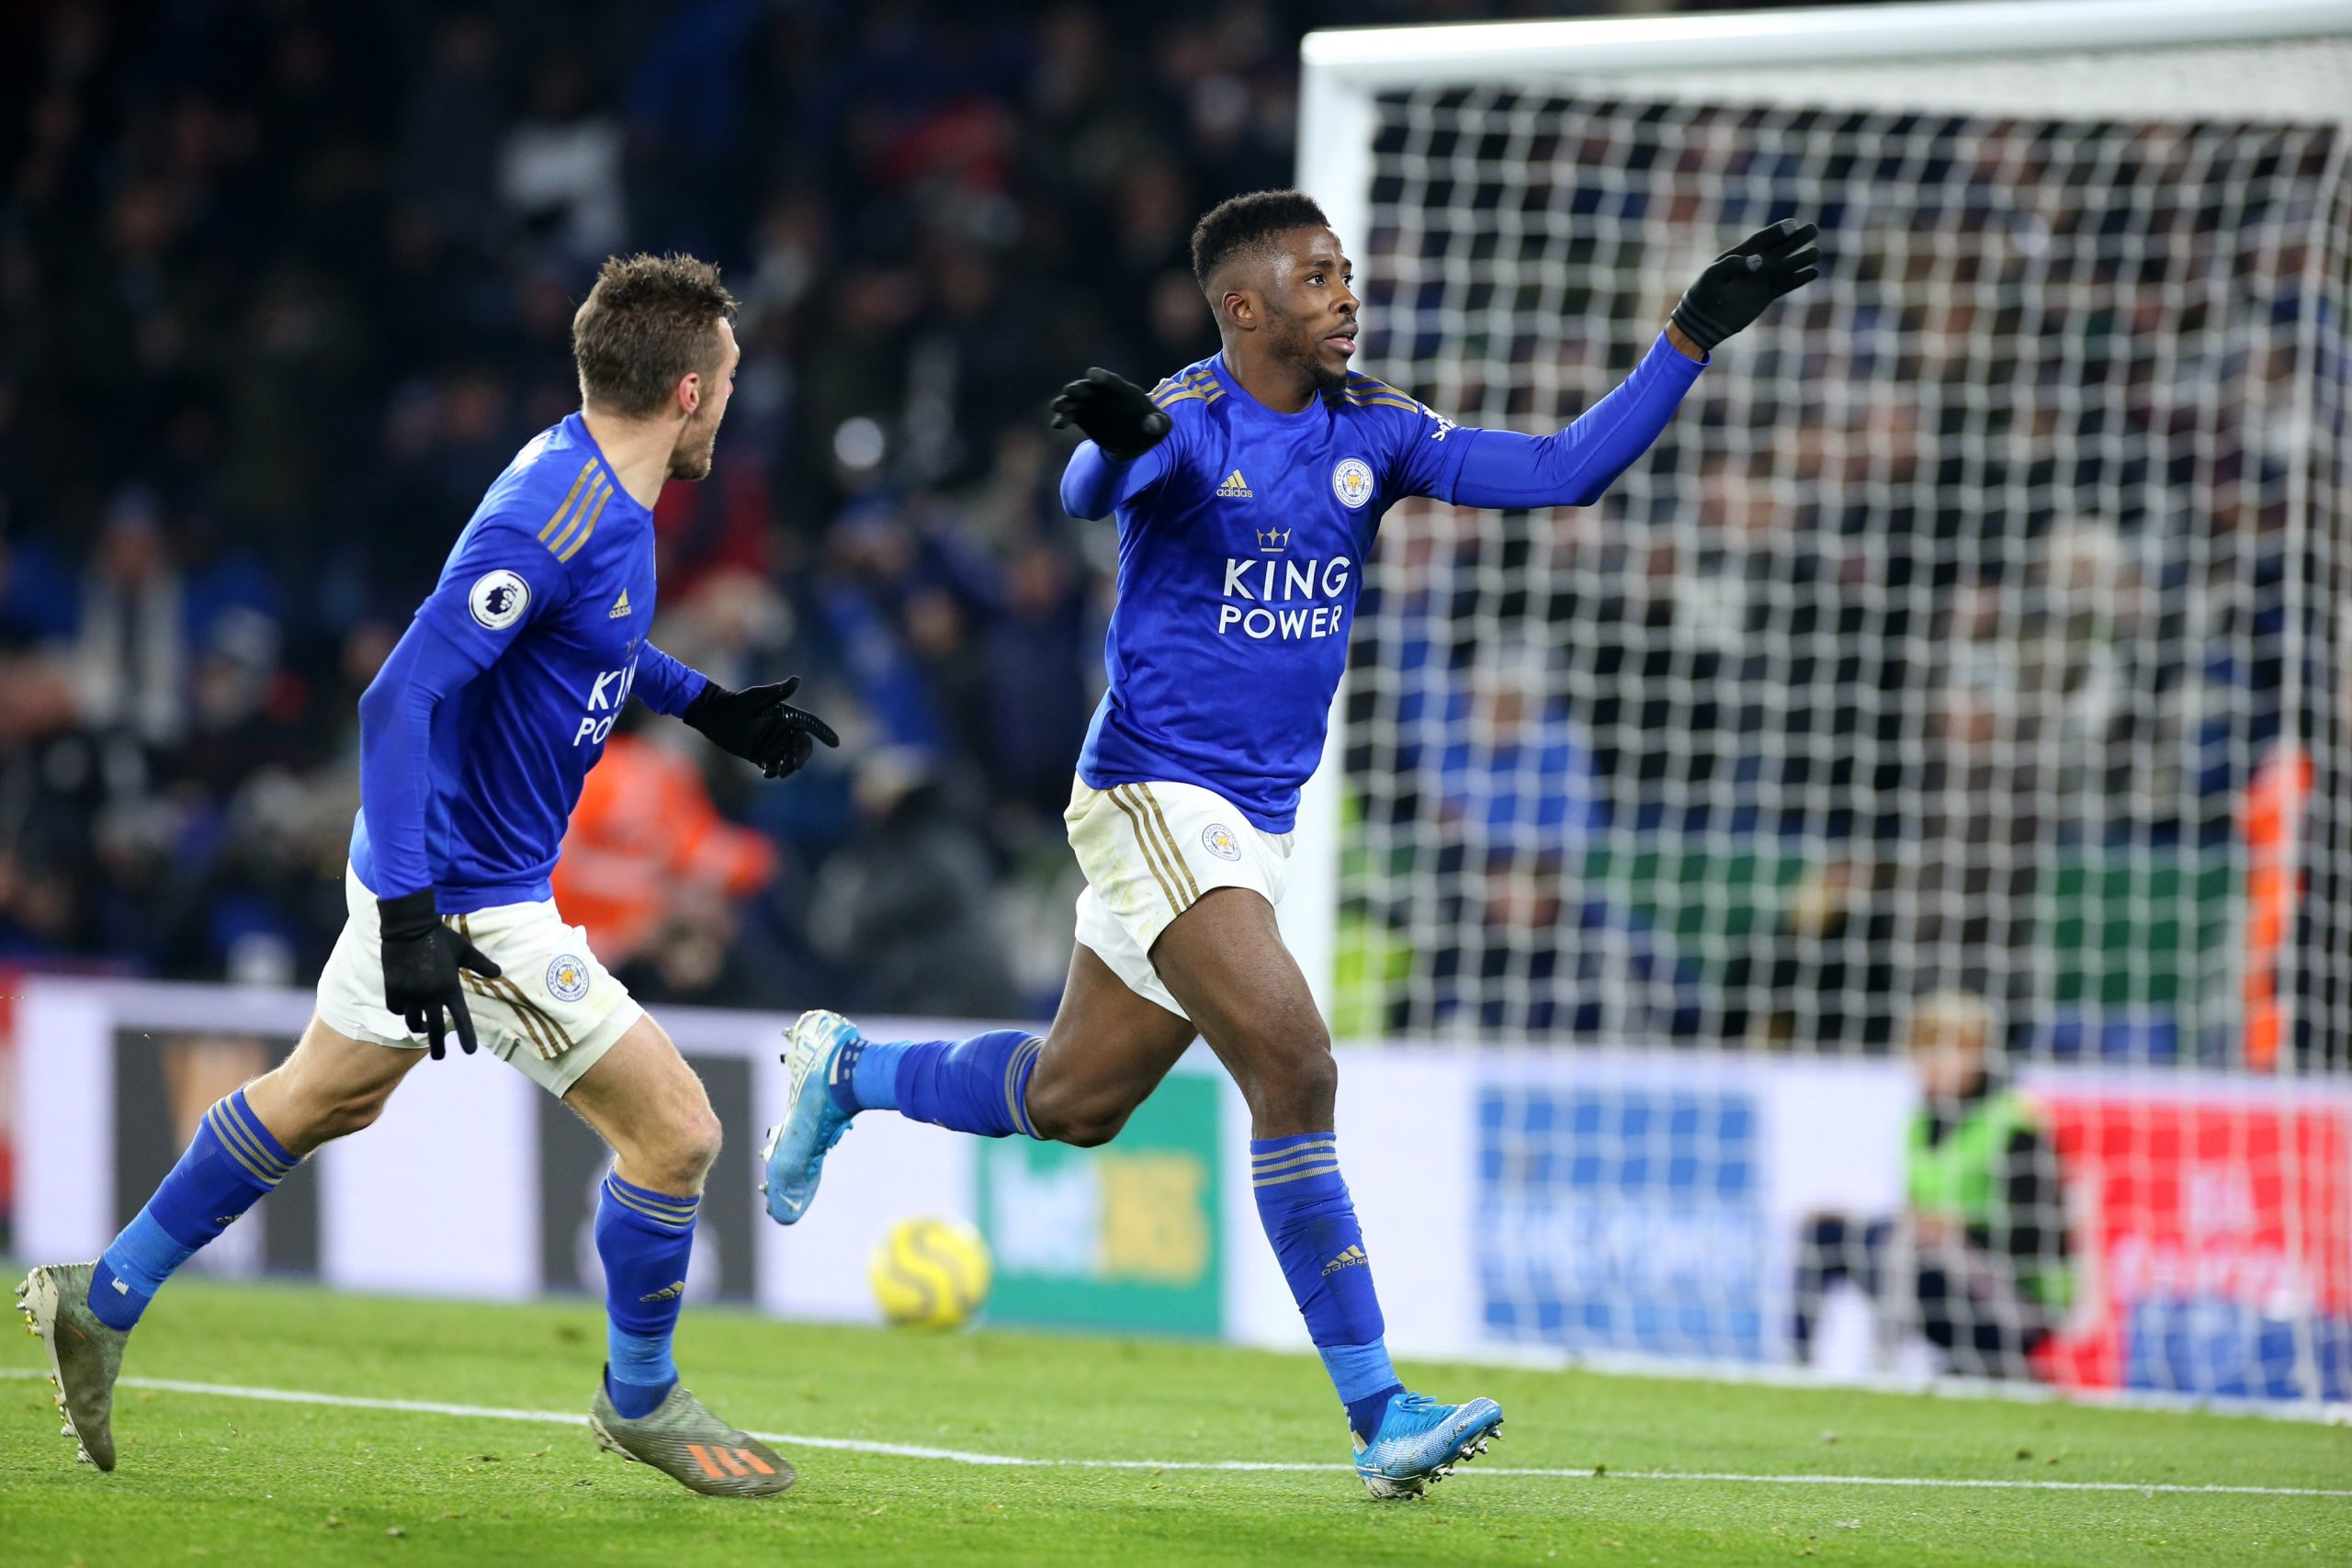 Ndidi, Vardy, Others Celebrate Iheanacho's Winning Goal Vs Everton